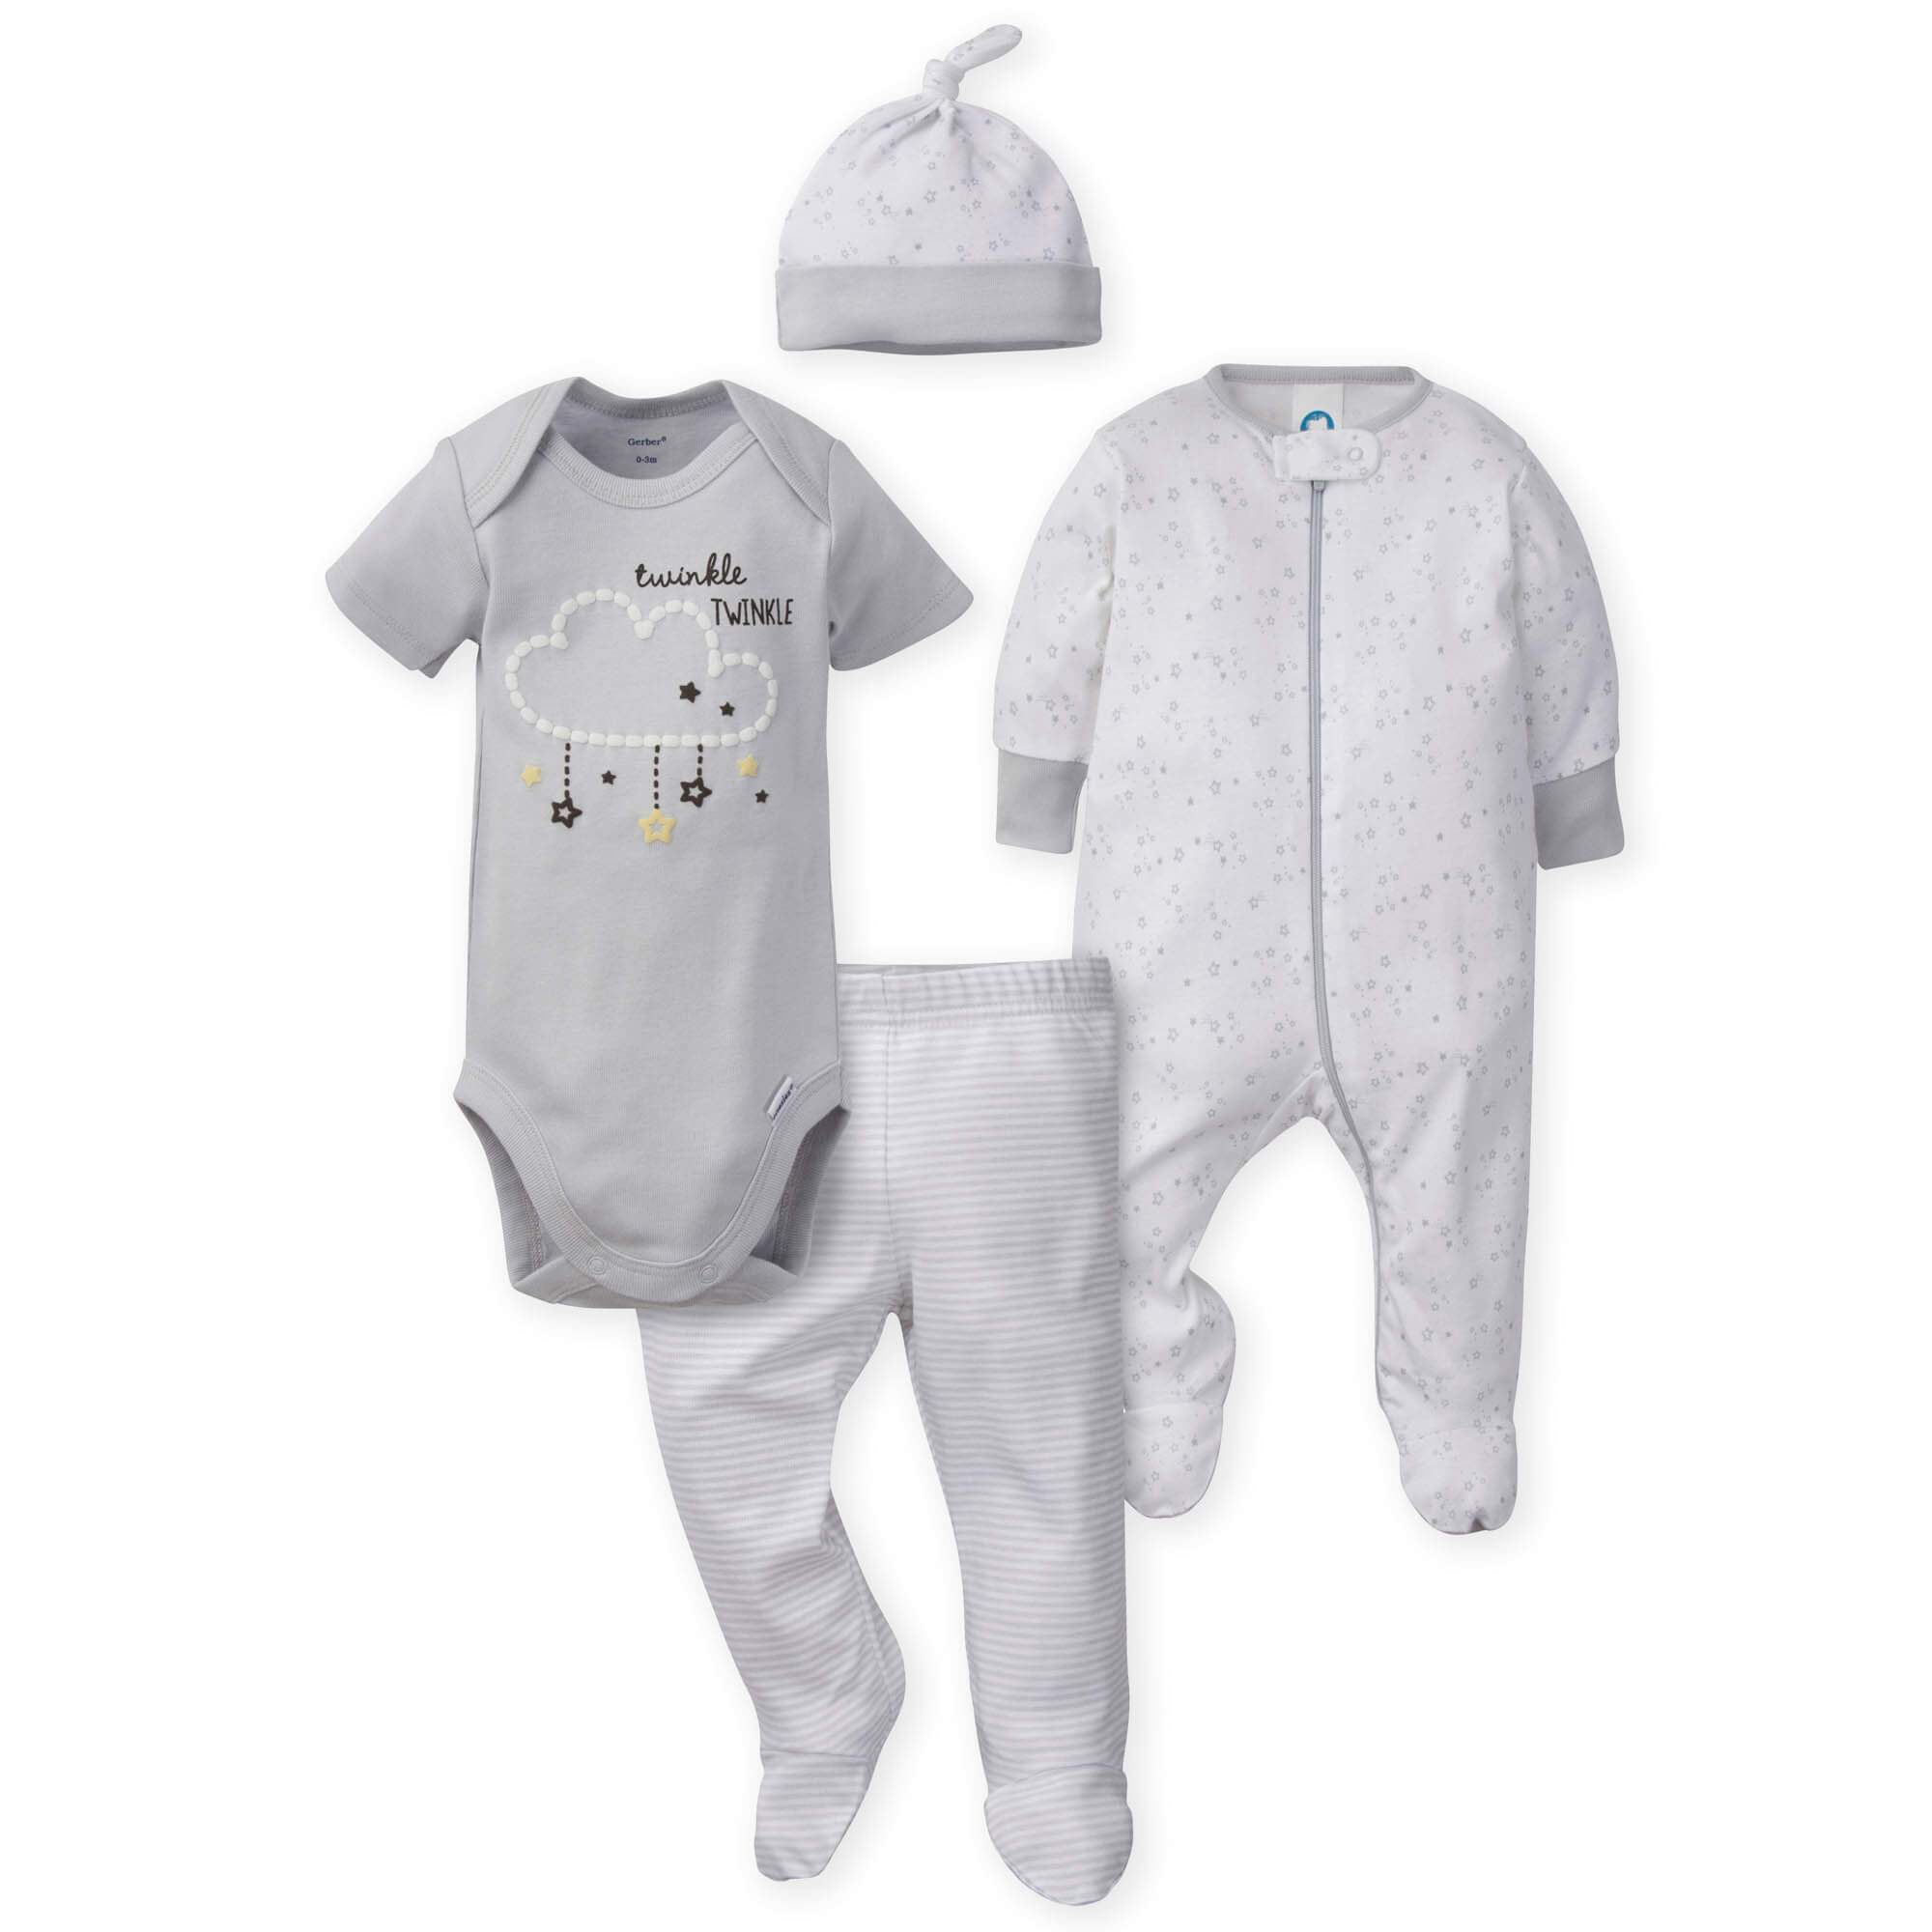 4-Piece Neutral Lamb Take-Me-Home Set